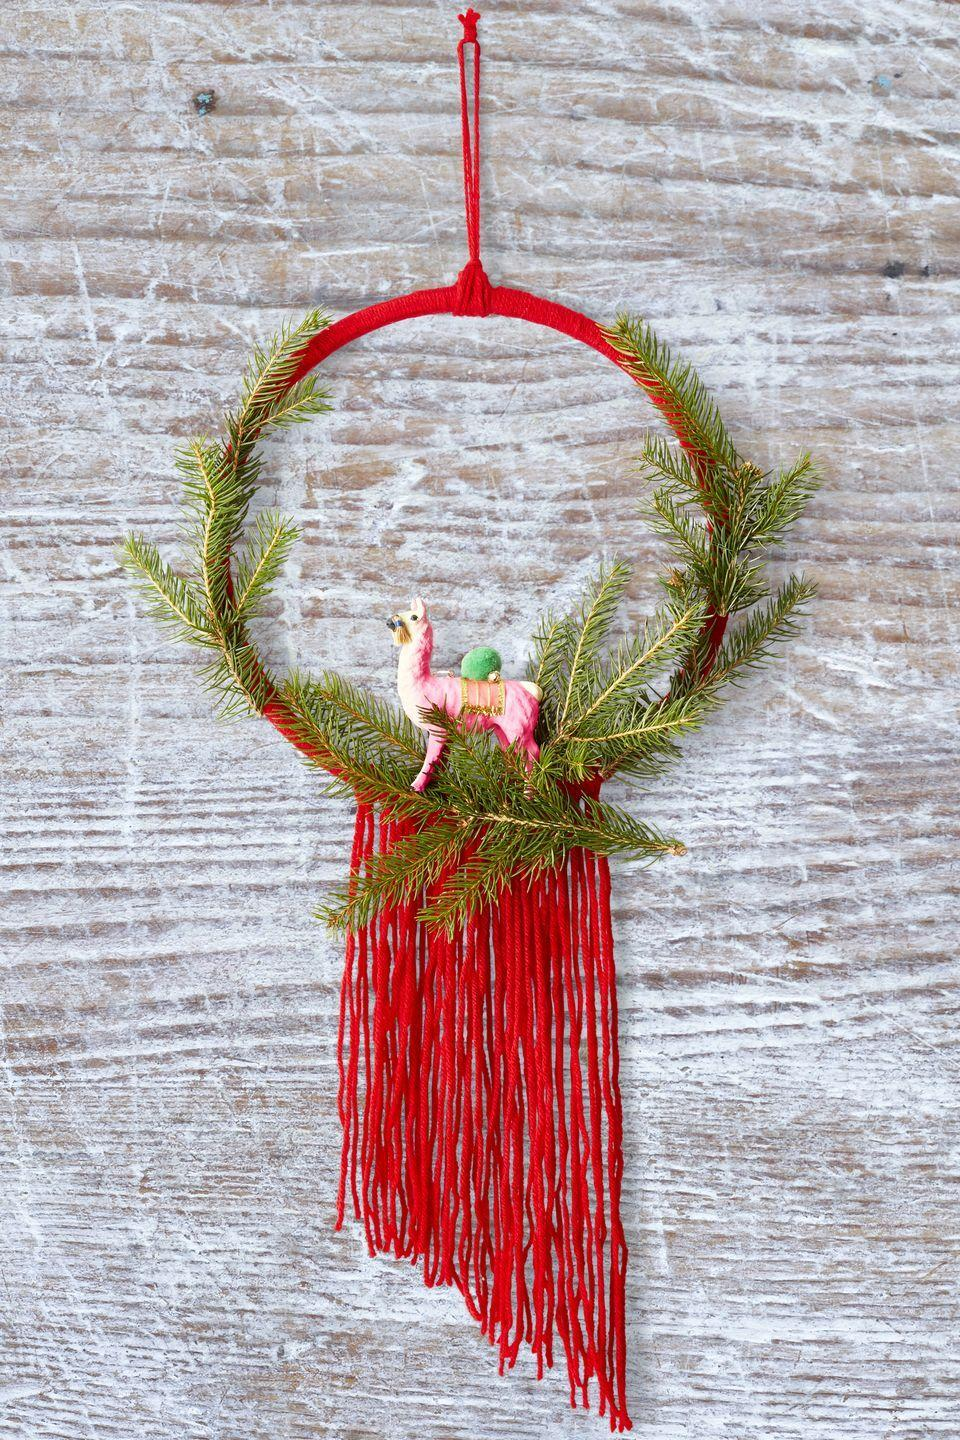 "<p>While this yarn-covered wreath may not withstand your next blizzard, it'll make a stunning door accent for the time being. Stick a pink llama, unicorn, or other mystical creature in the center for a touch of magic. </p><p><strong>RELATED:</strong> <a href=""https://www.goodhousekeeping.com/holidays/christmas-ideas/how-to/g1253/diy-christmas-wreaths/"" rel=""nofollow noopener"" target=""_blank"" data-ylk=""slk:60 Christmas Wreaths to Get You in the Holiday Spirit"" class=""link rapid-noclick-resp"">60 Christmas Wreaths to Get You in the Holiday Spirit</a></p>"